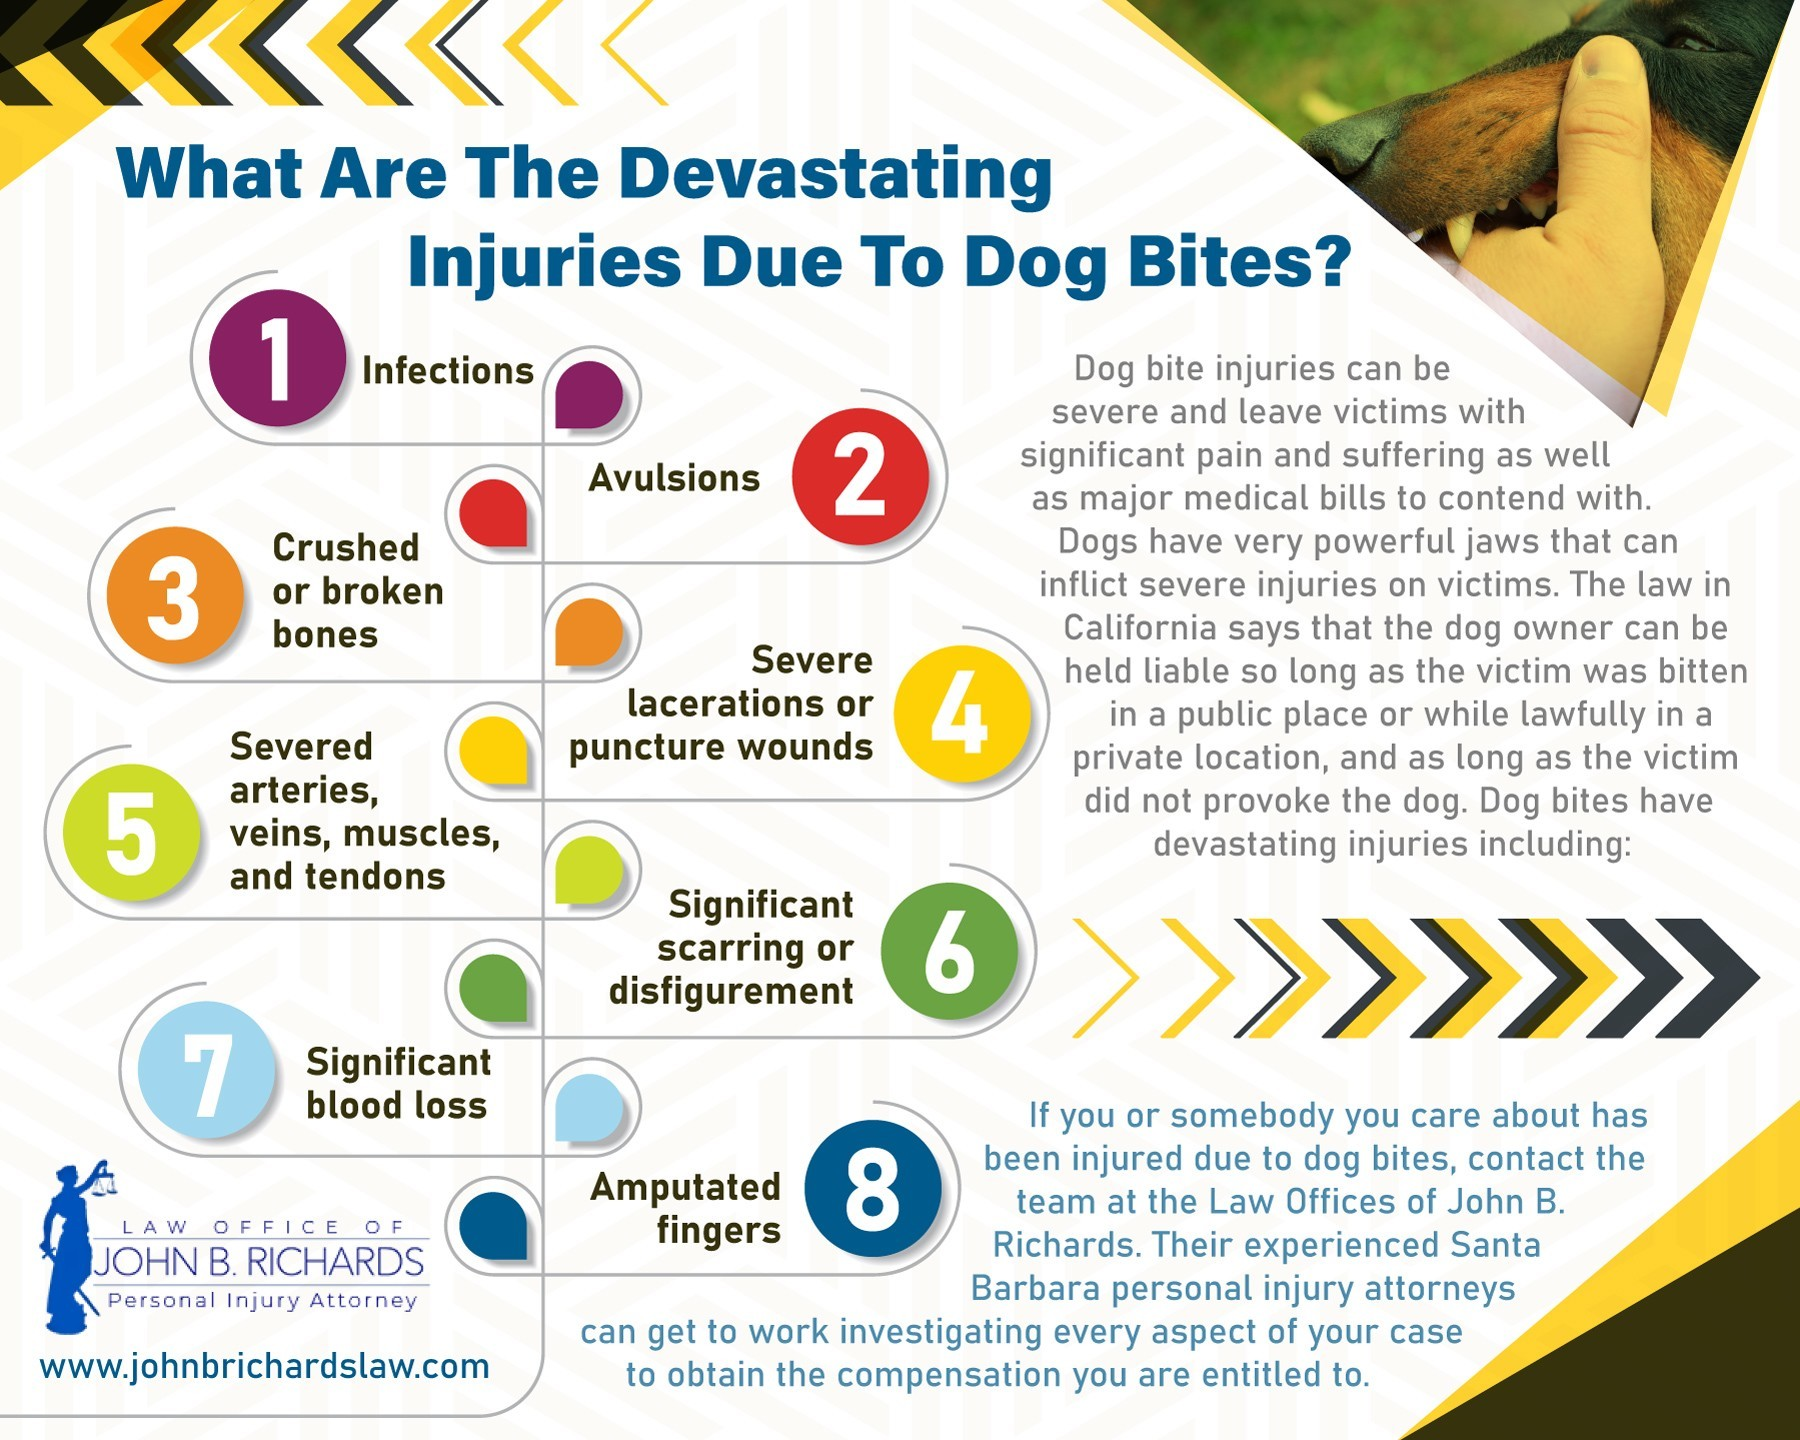 What Are The Devastating Injuries Due To Dog Bites?